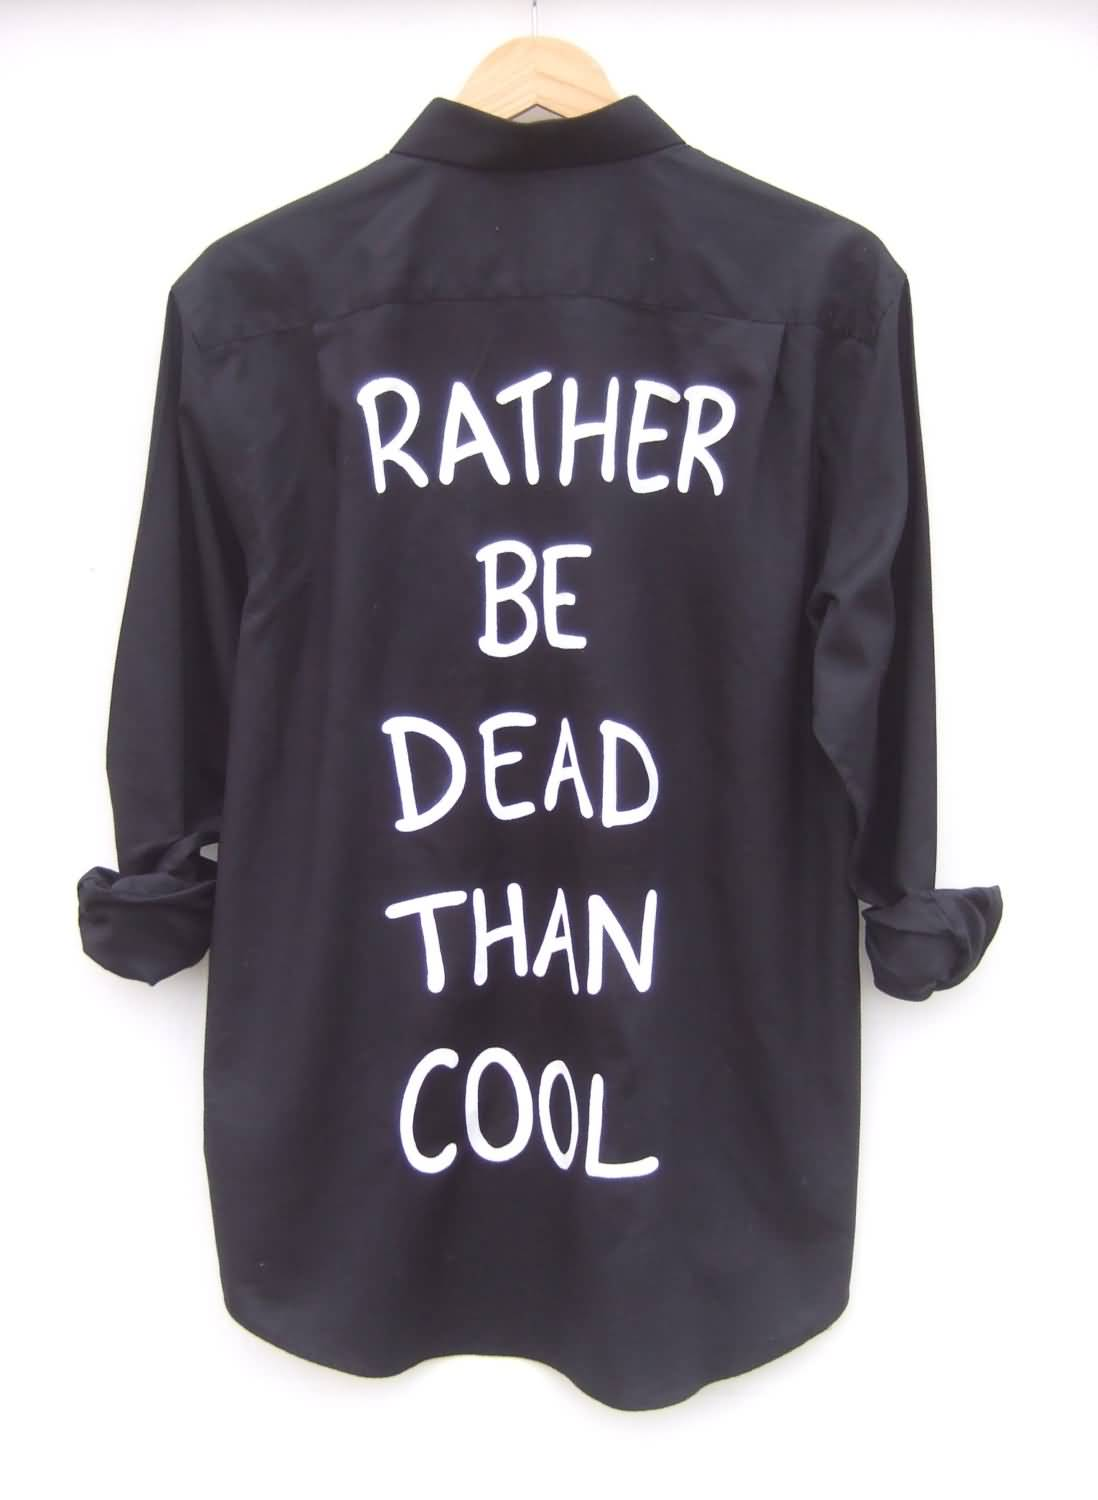 Rather be dead than cool. - Kurt Cobain